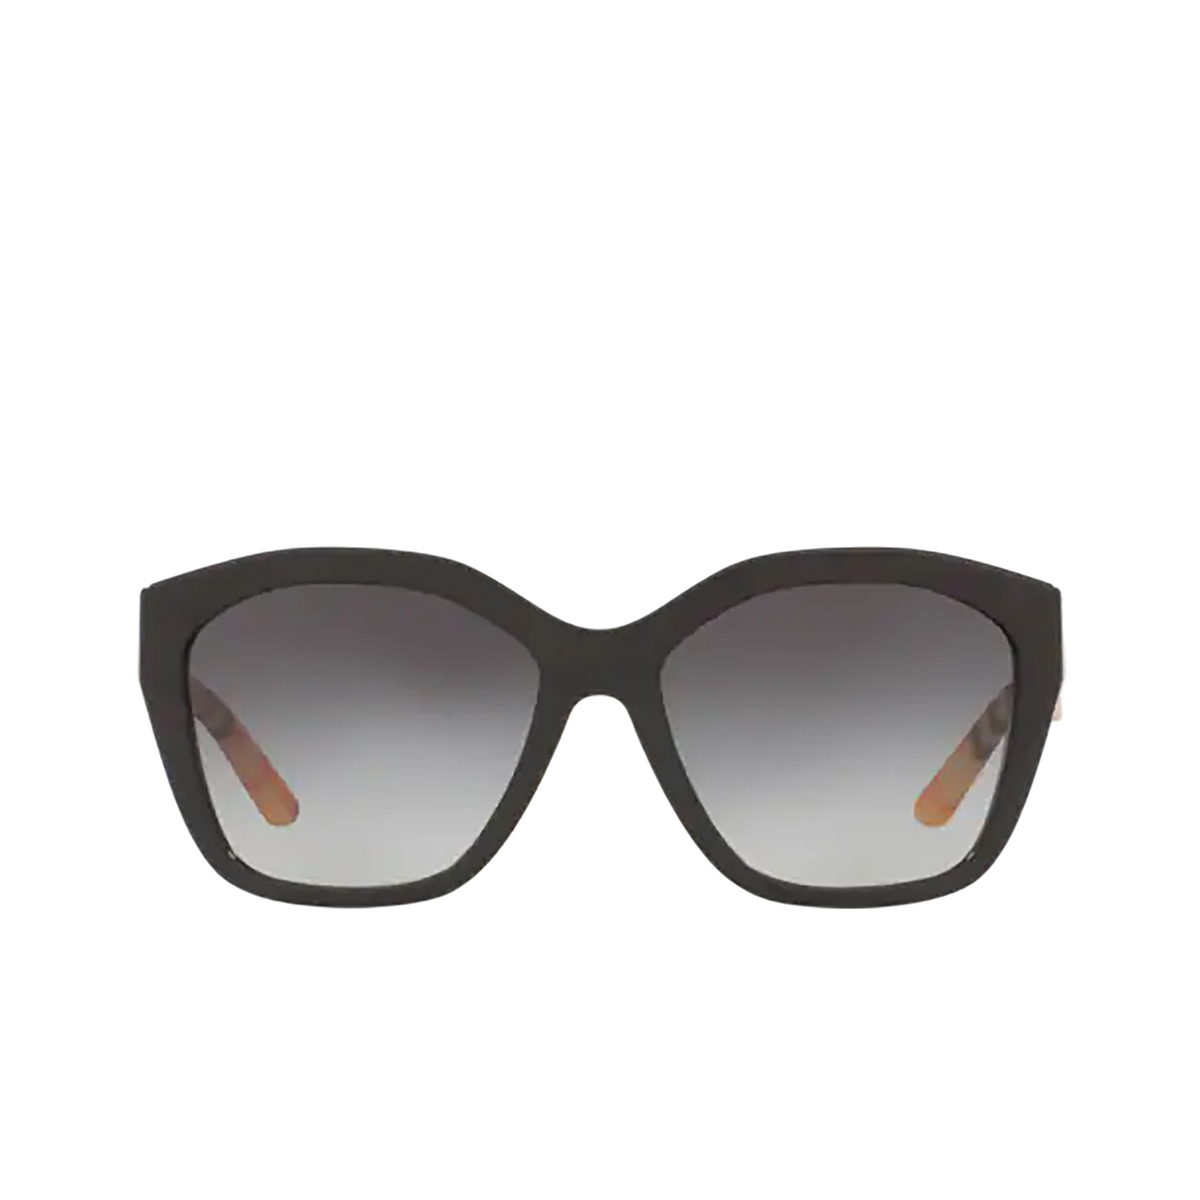 Burberry® Irregular Sunglasses: BE4261 color Black 37578G - front view.